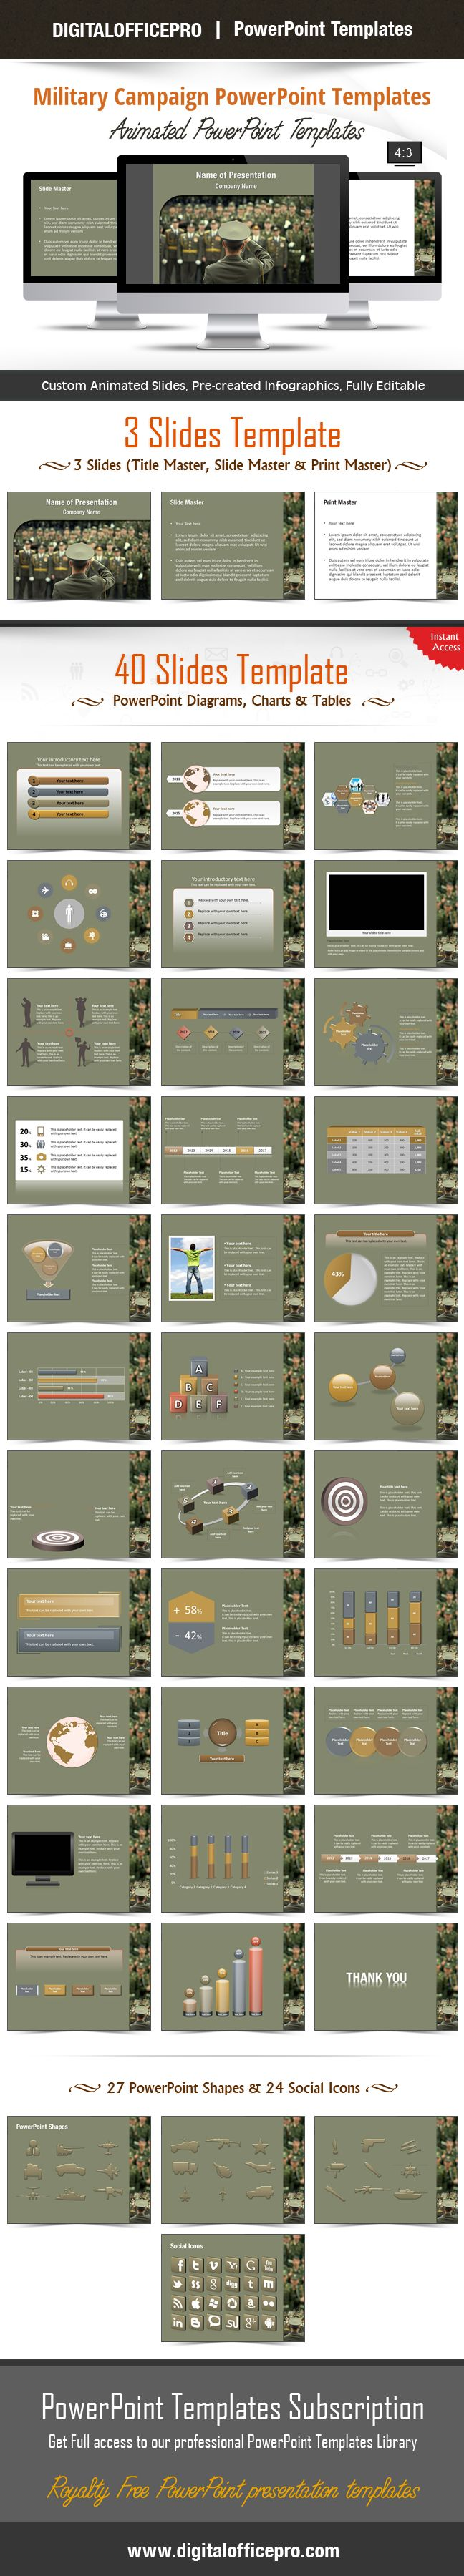 Impress and Engage your audience with Military Campaign PowerPoint Template and Military Campaign PowerPoint Backgrounds from DigitalOfficePro. Each template comes with a set of PowerPoint Diagrams, Charts & Shapes and are available for instant download.